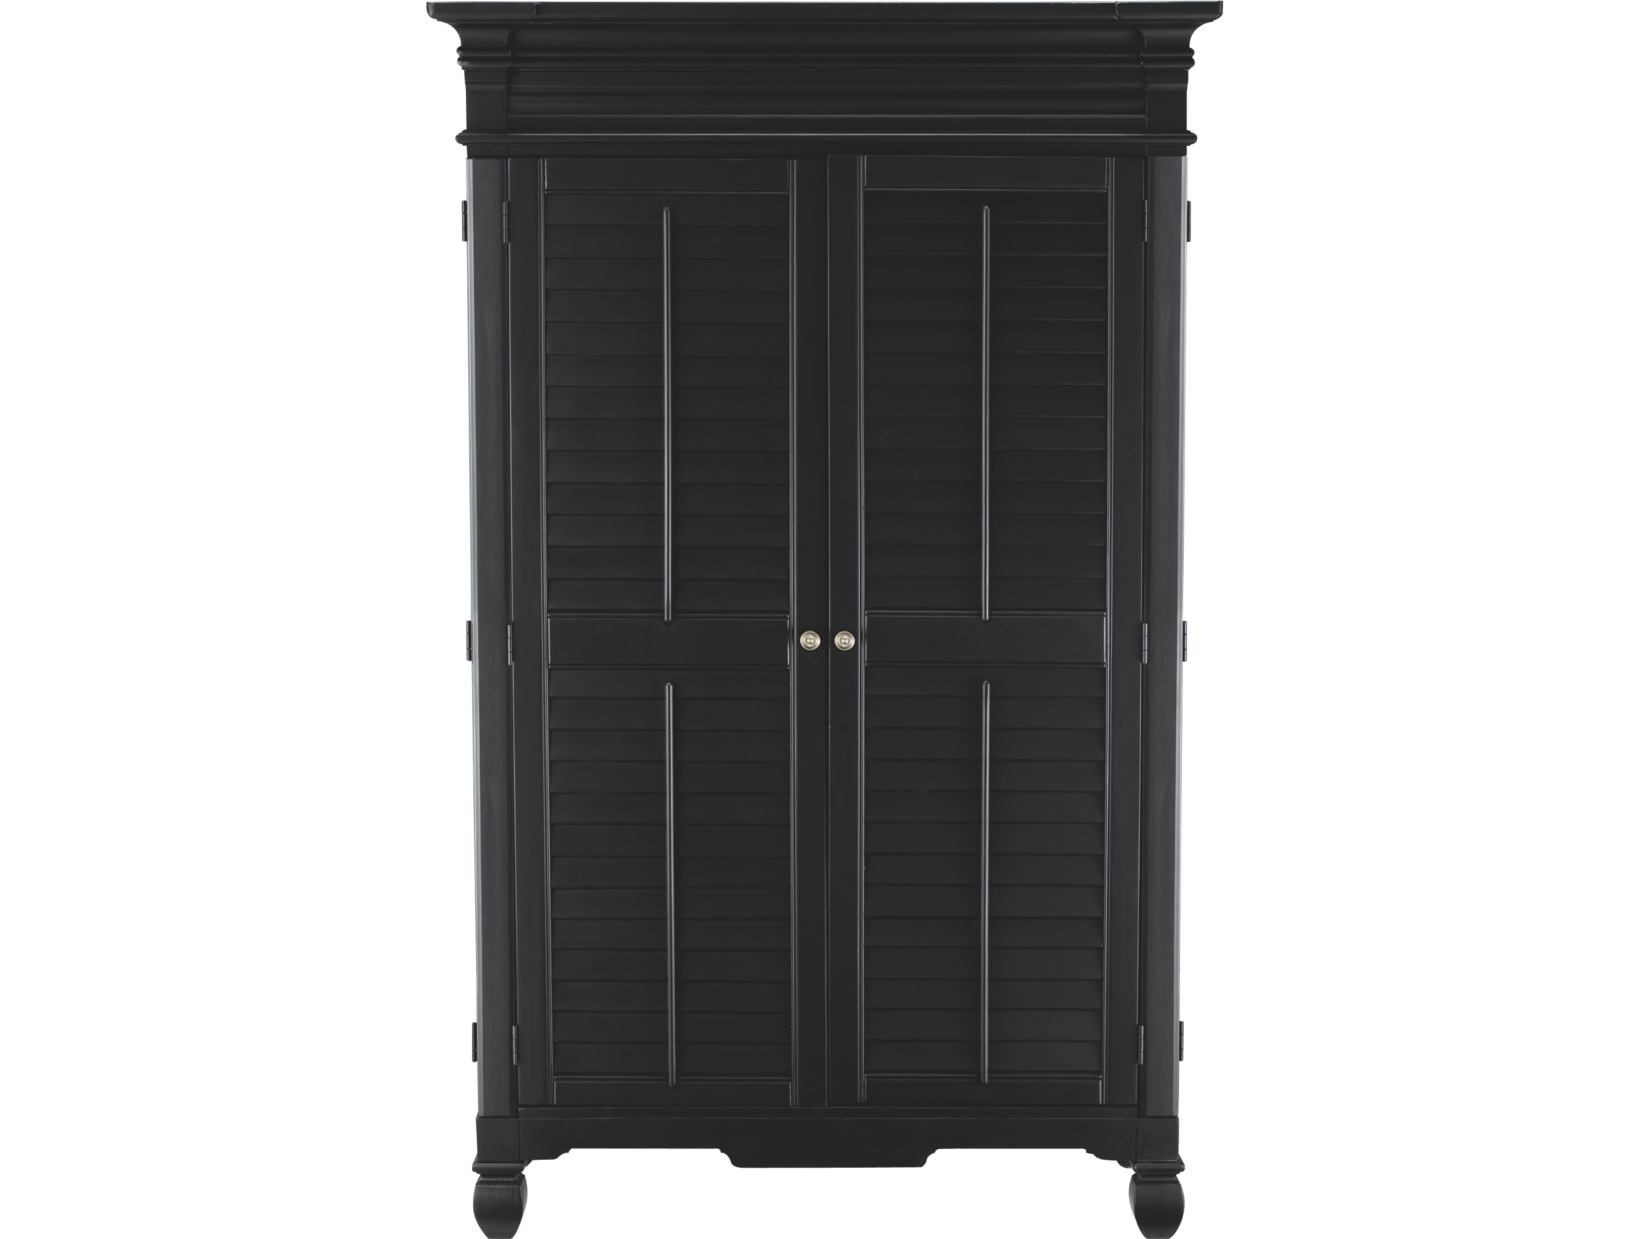 7178bd1ca64d5d0a84b03d9750bf3b10 plantation cove black armoire value city furniture  at fashall.co